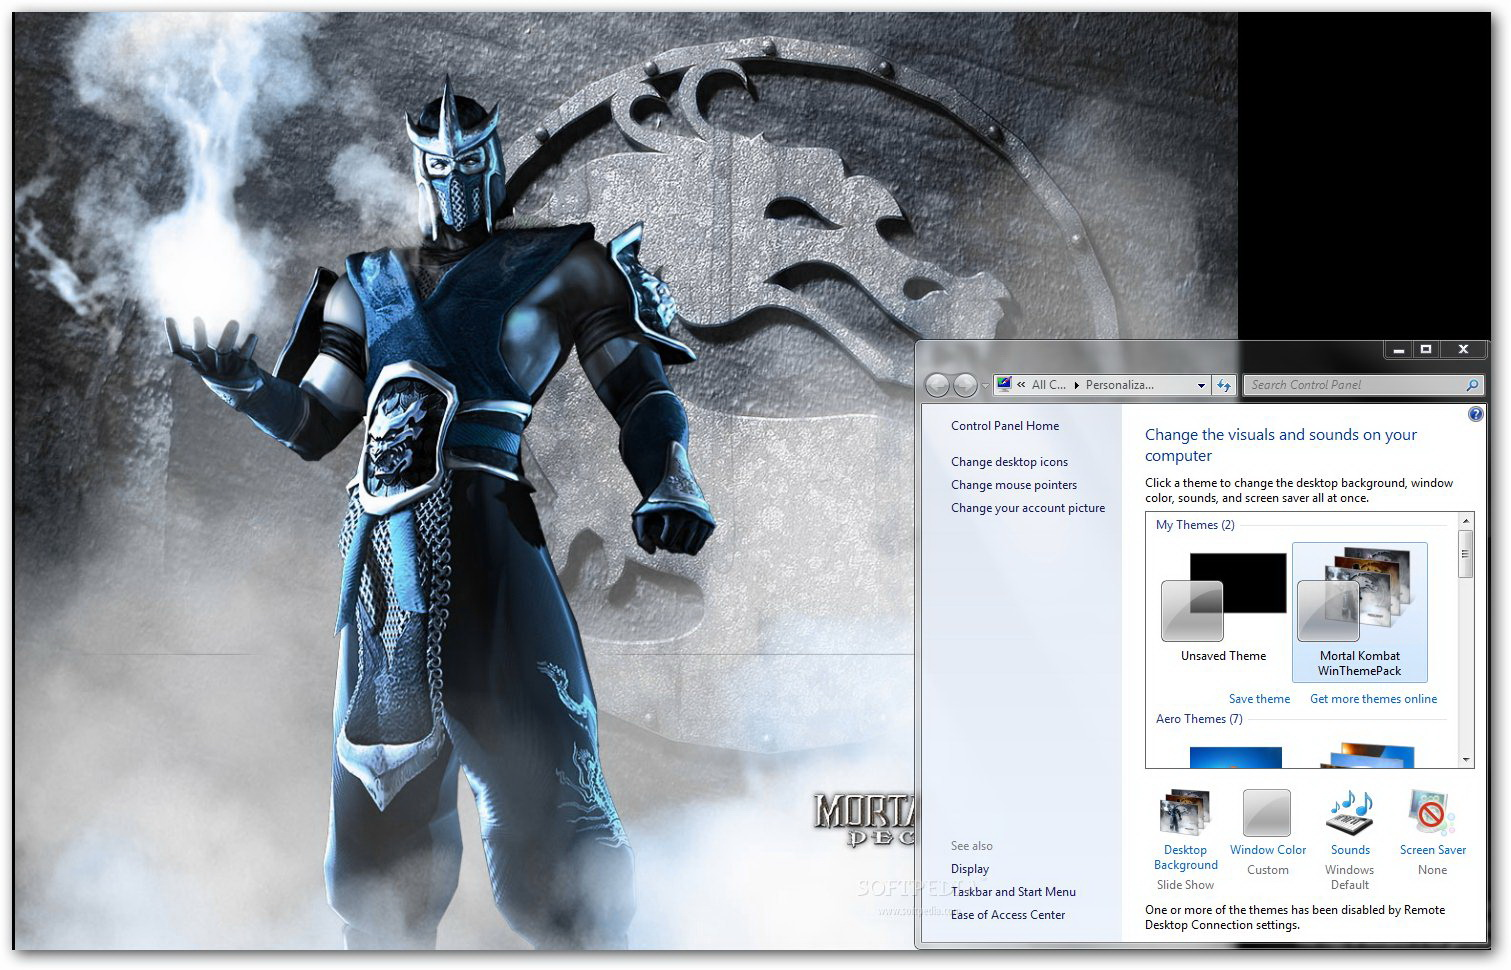 Mortal Kombat Windows Theme